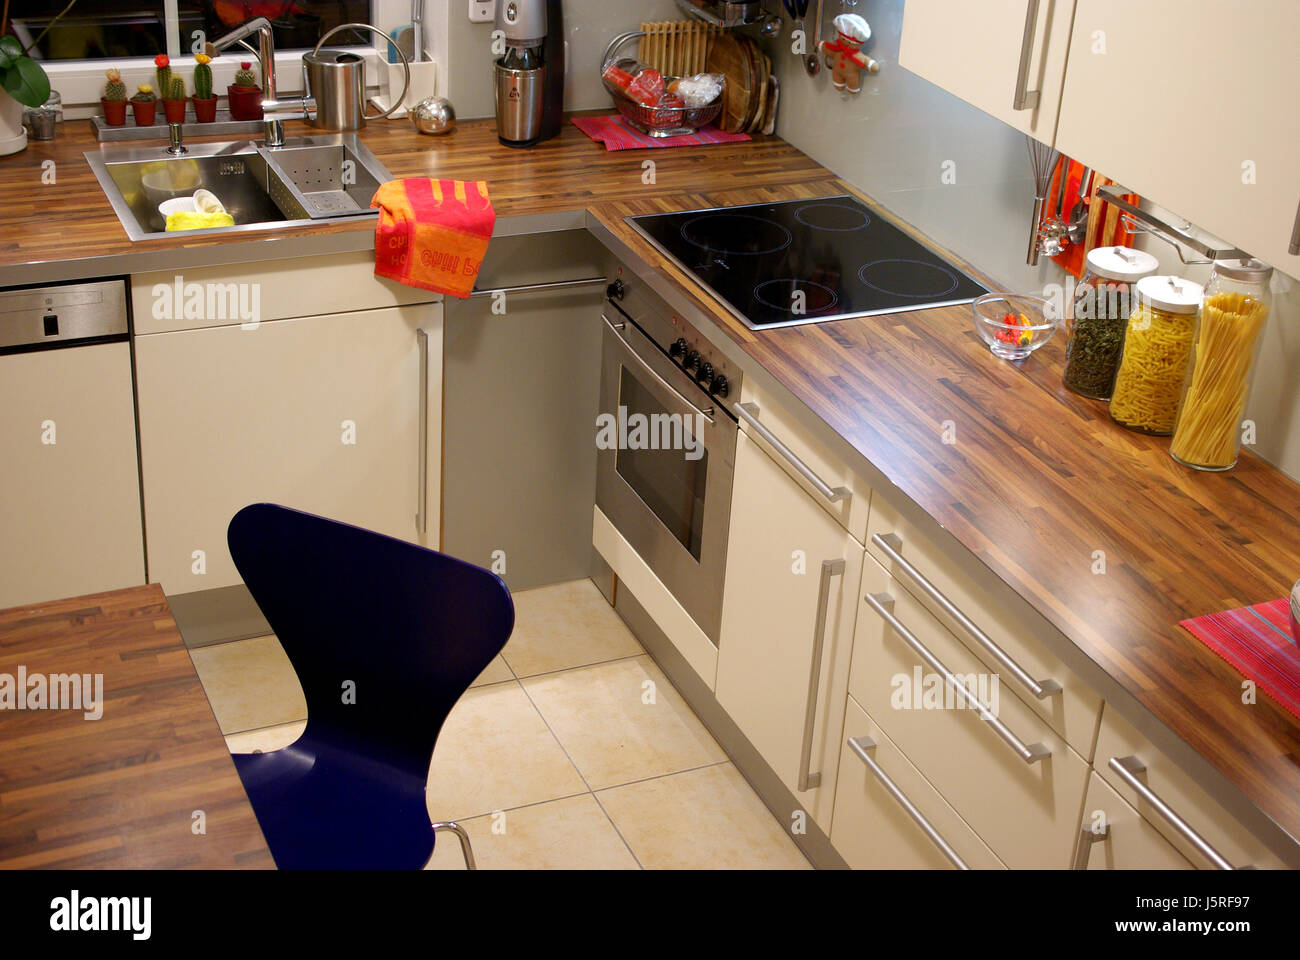 Furniture Flow Room Ceramic Tiles Kitchen Cuisine Housing Space Snug Fitted    Stock Image